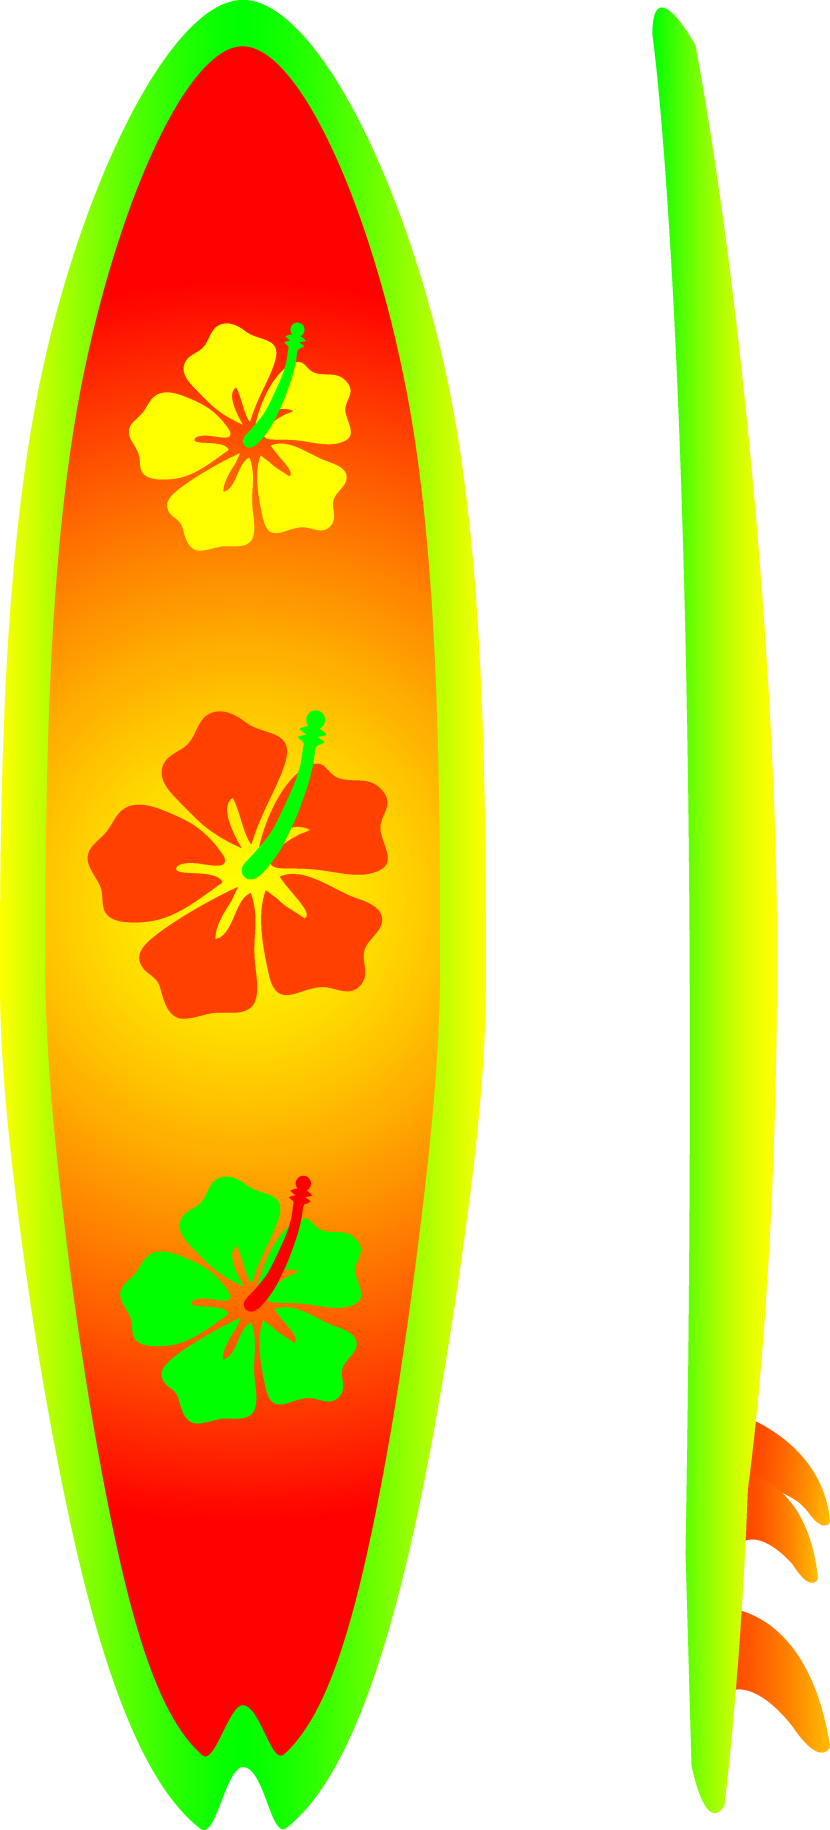 Green clipart surfboard. Transparent background image group